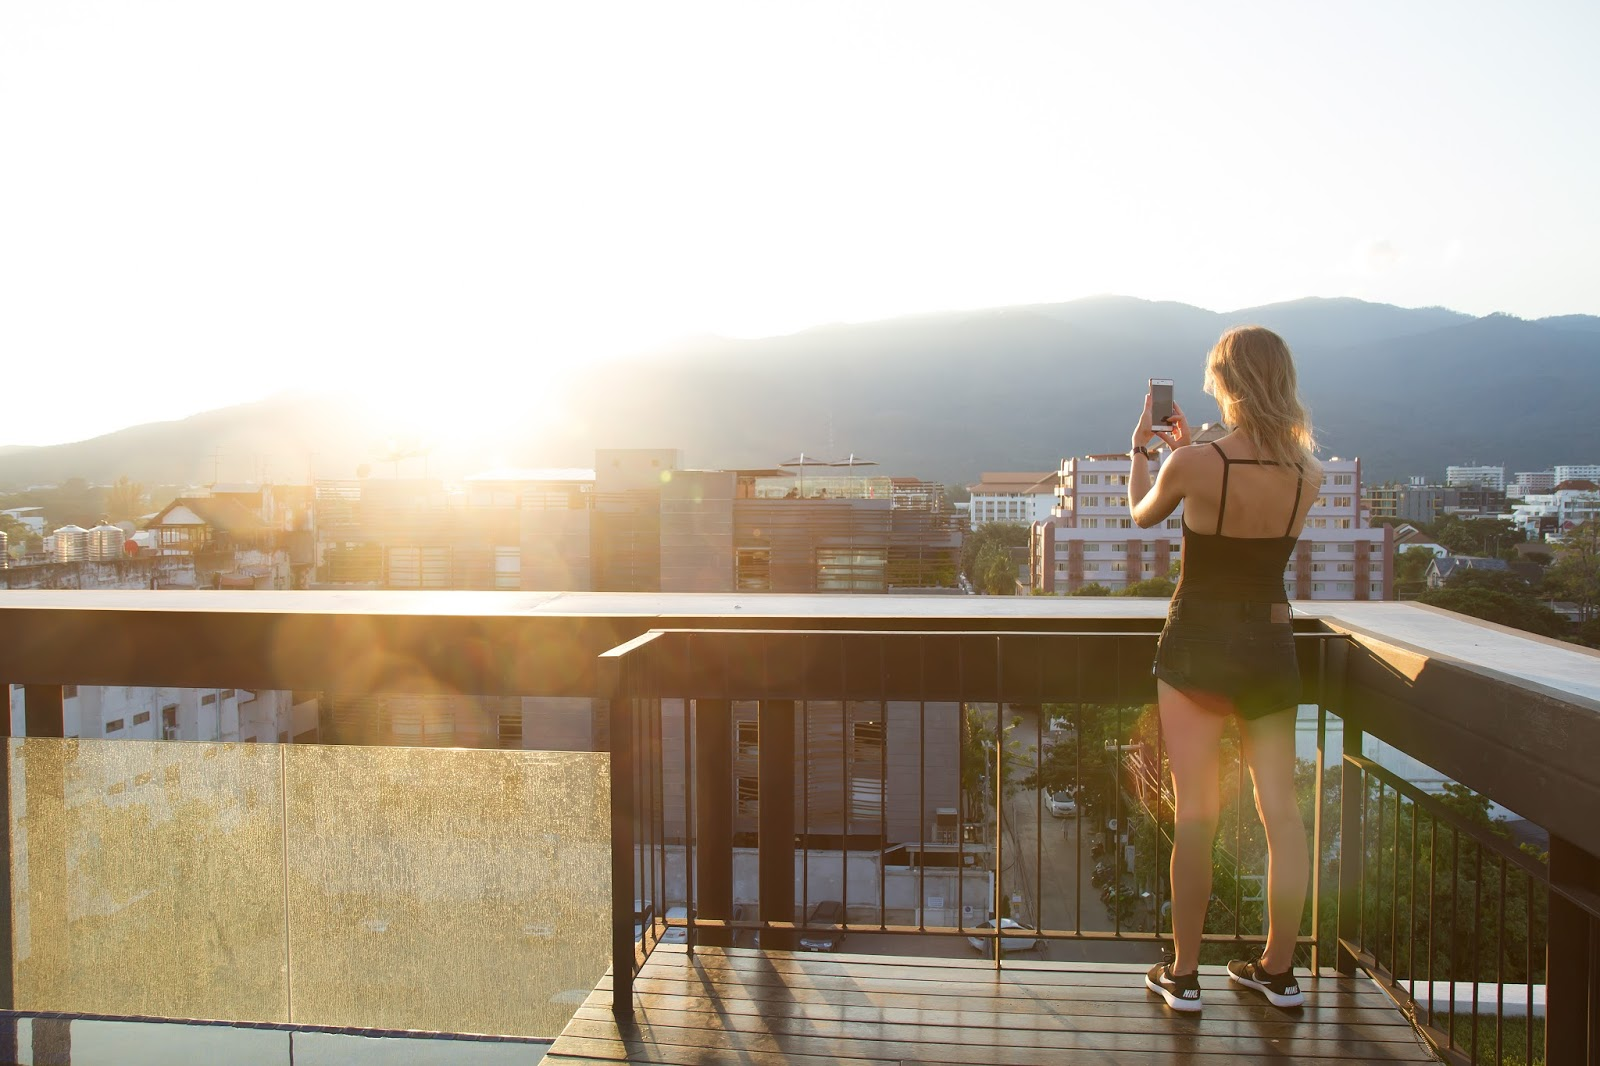 Fashion/Travel blogger and digital nomad, Alison Hutchinson of Styling My Life, is wearing a black Topshop bodysuit and black One Teaspoon Bandits with NIke Trainers on a rooftop overlooking Chinag Mai